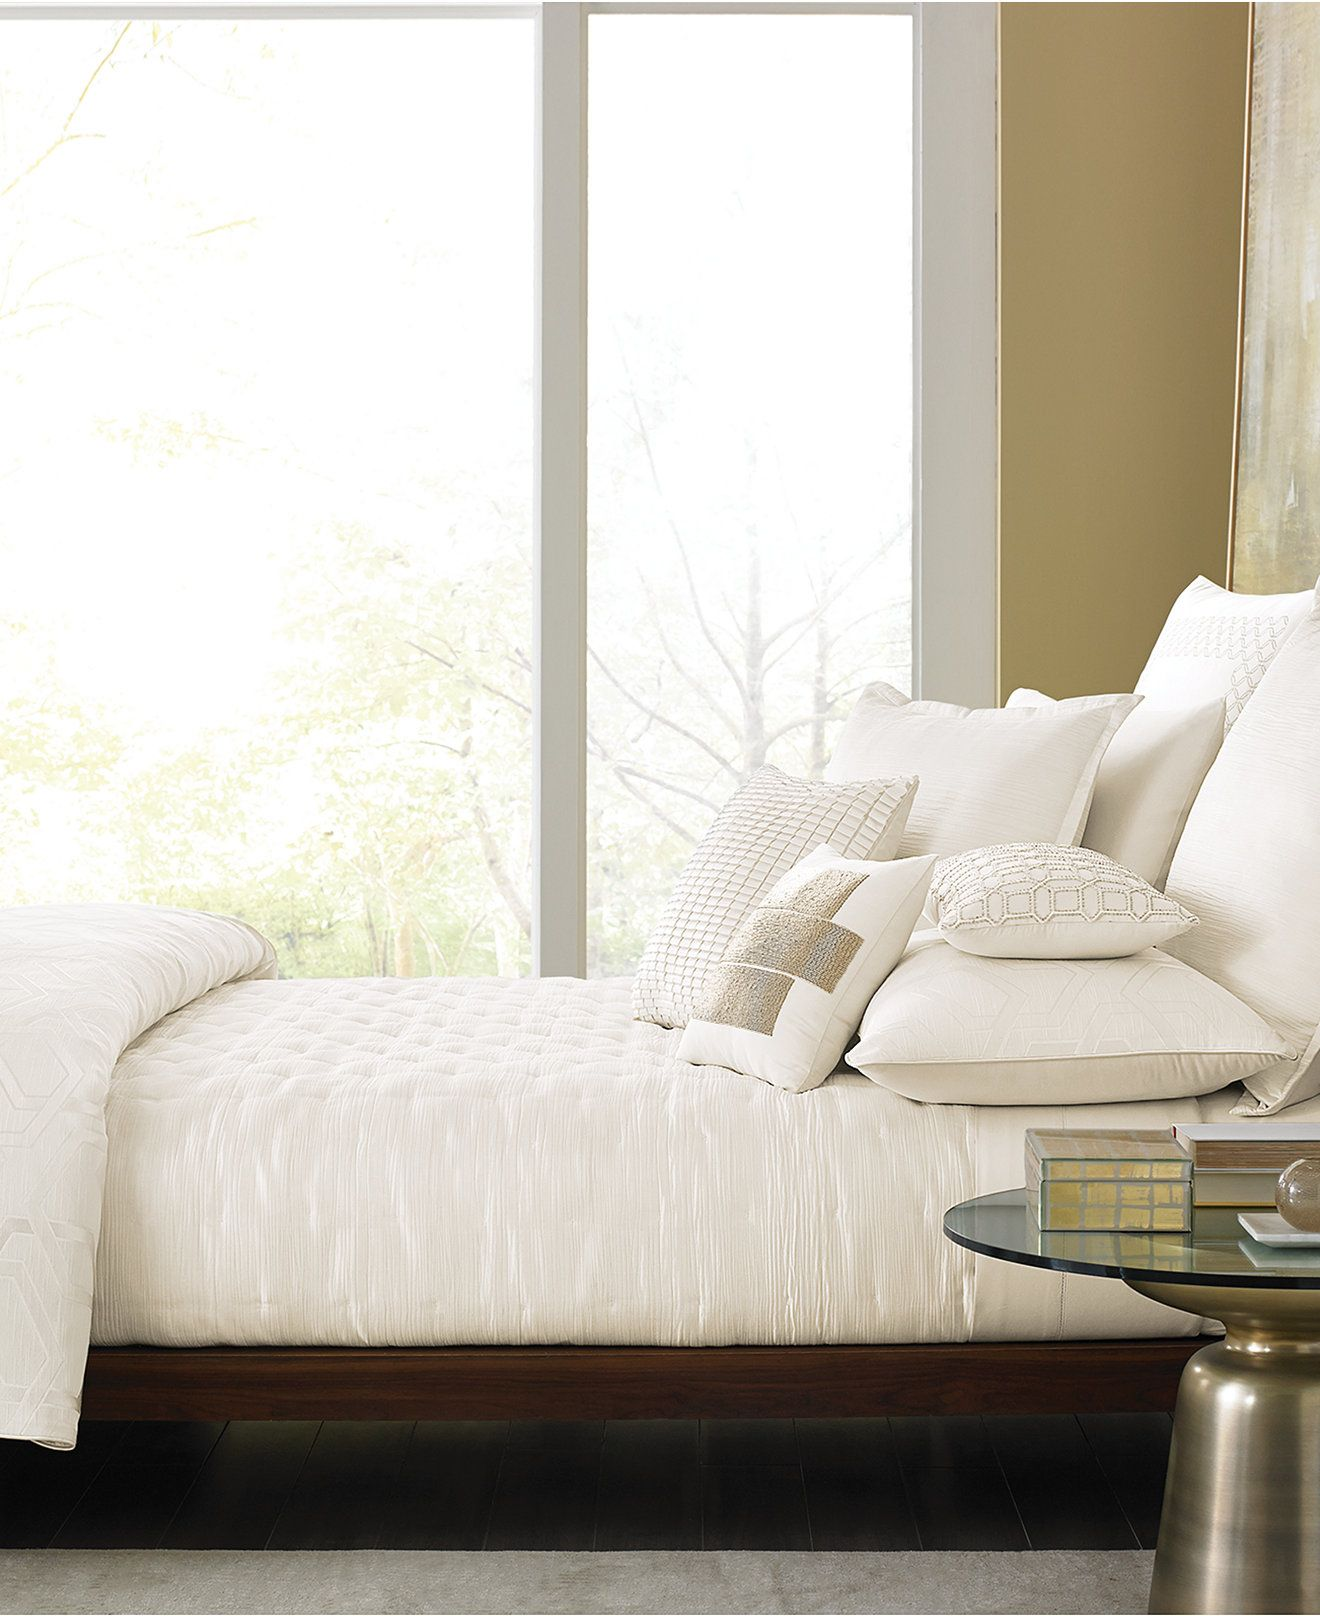 Hotel Collection Verve Coverlet Collection - Bedding Collections ... : hotel collection quilted coverlet - Adamdwight.com